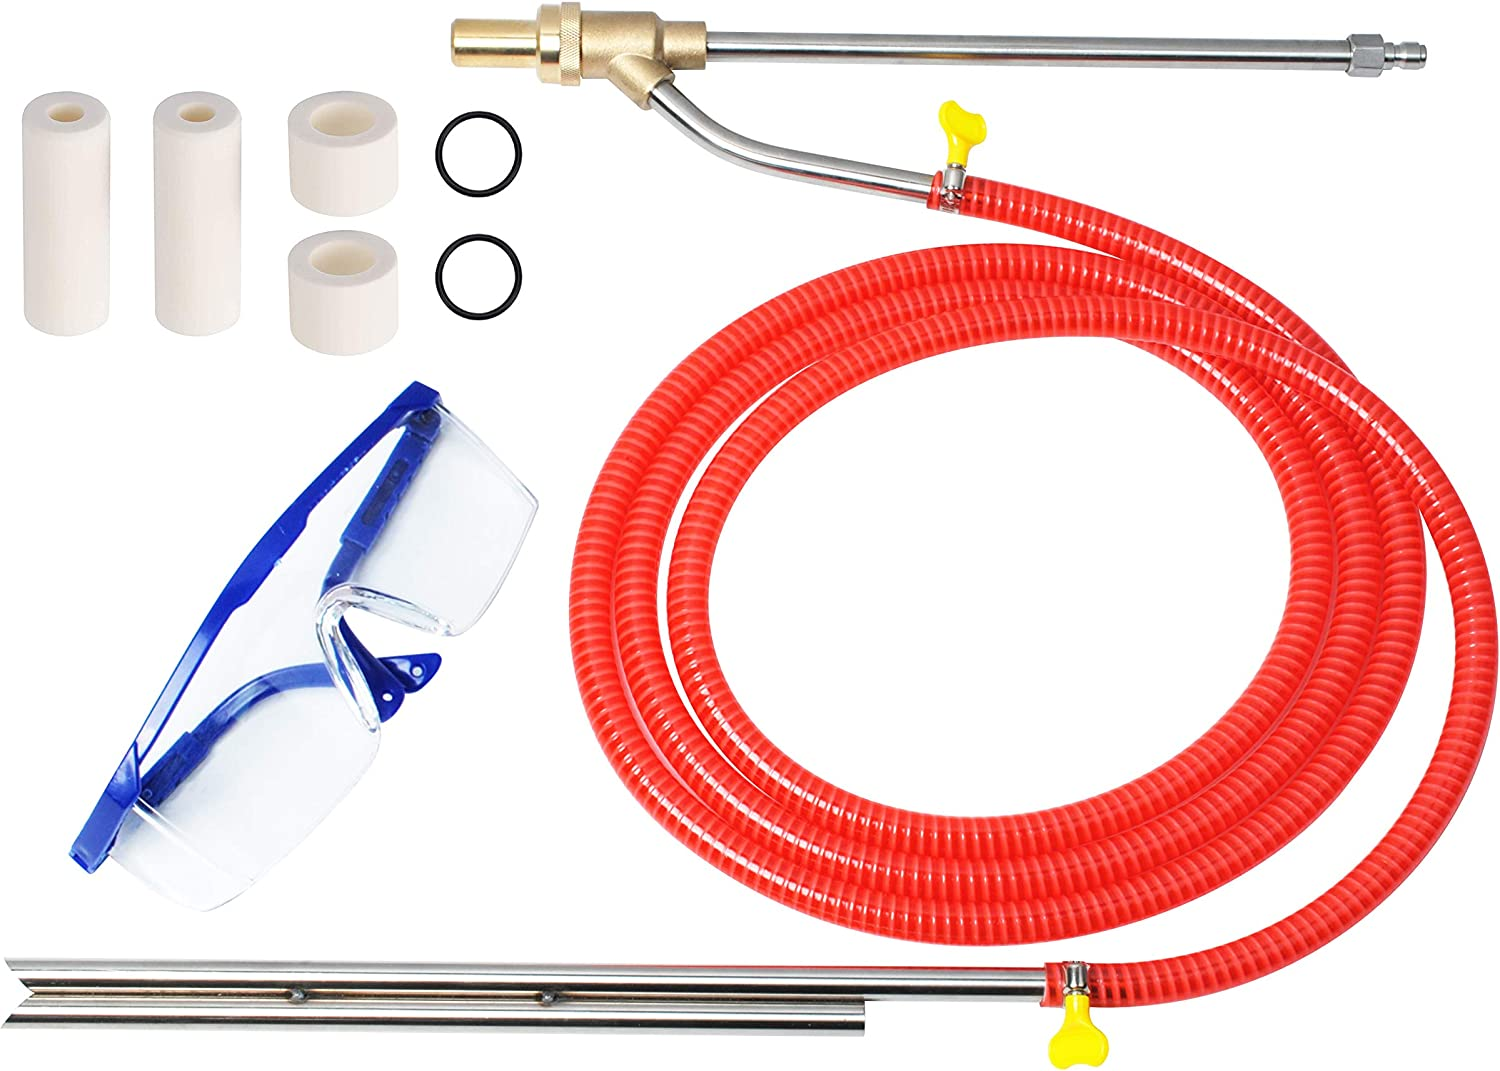 Pressure Washer Sandblasting Kit, Wet Sandblaster Attachment, with Replacement Nozzle Tips, 5000 PSI, 1/4 Inch Quick Disconnect